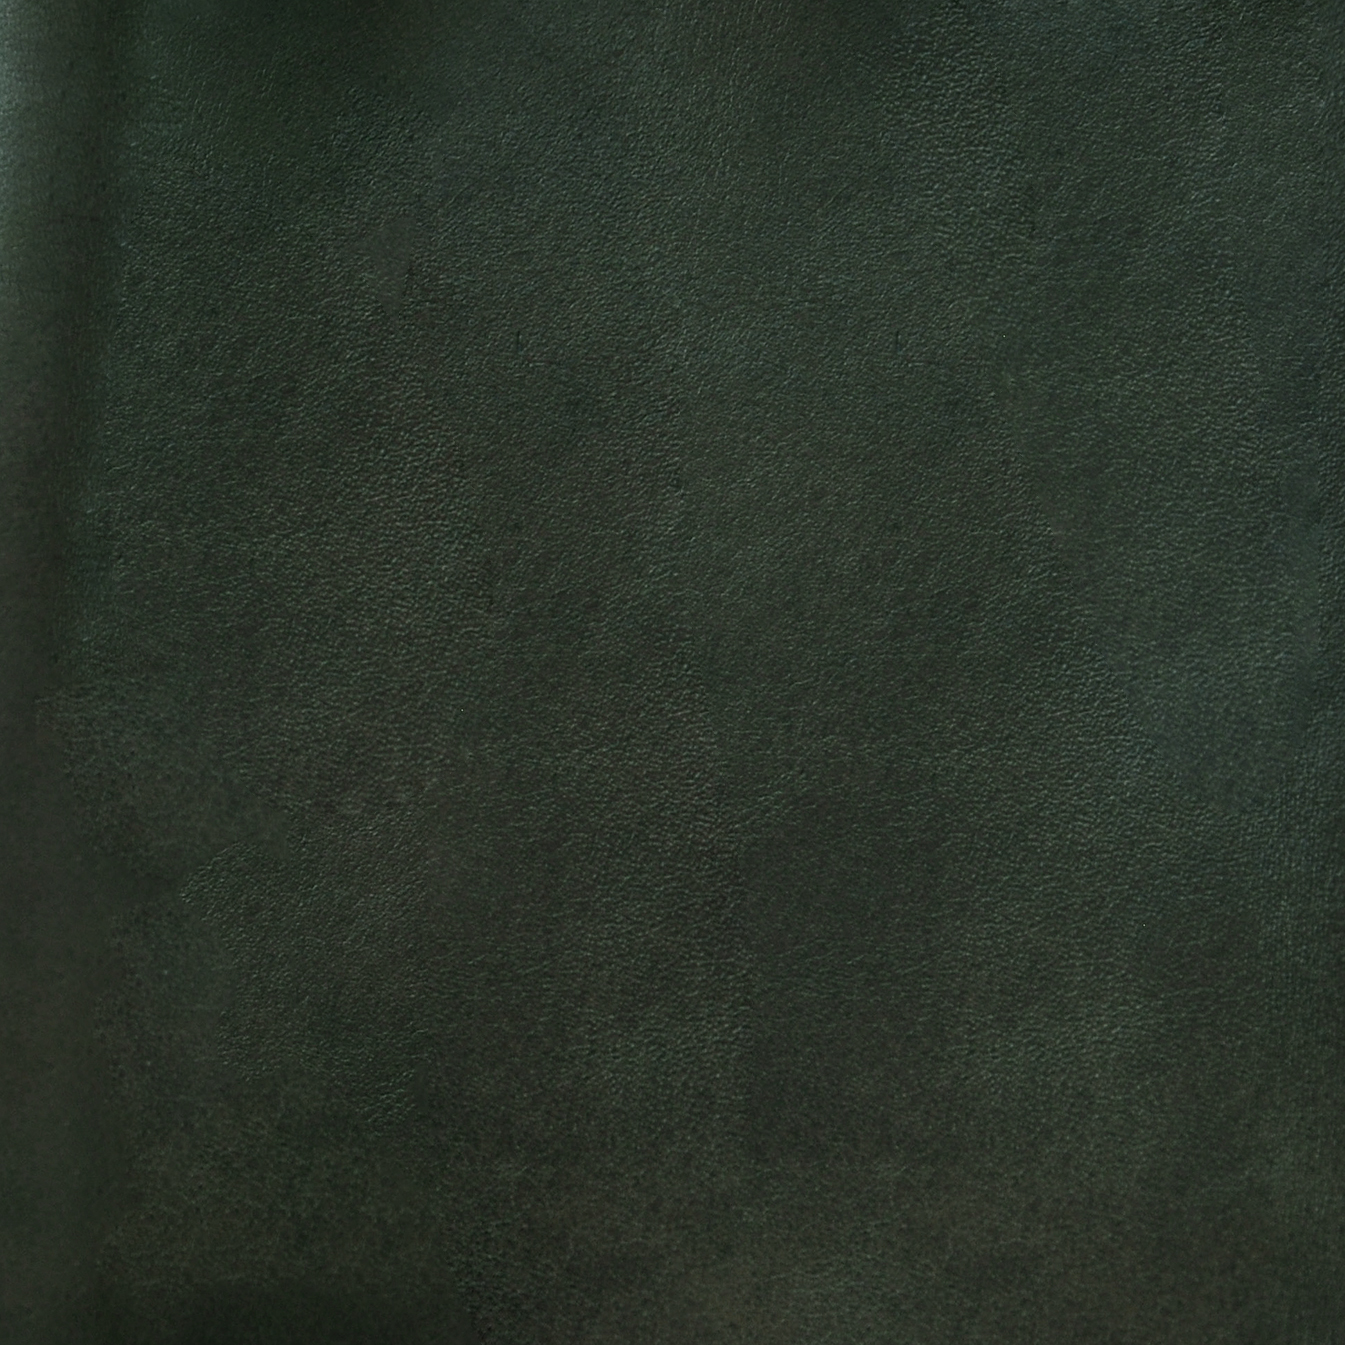 shadow leather in forest green color